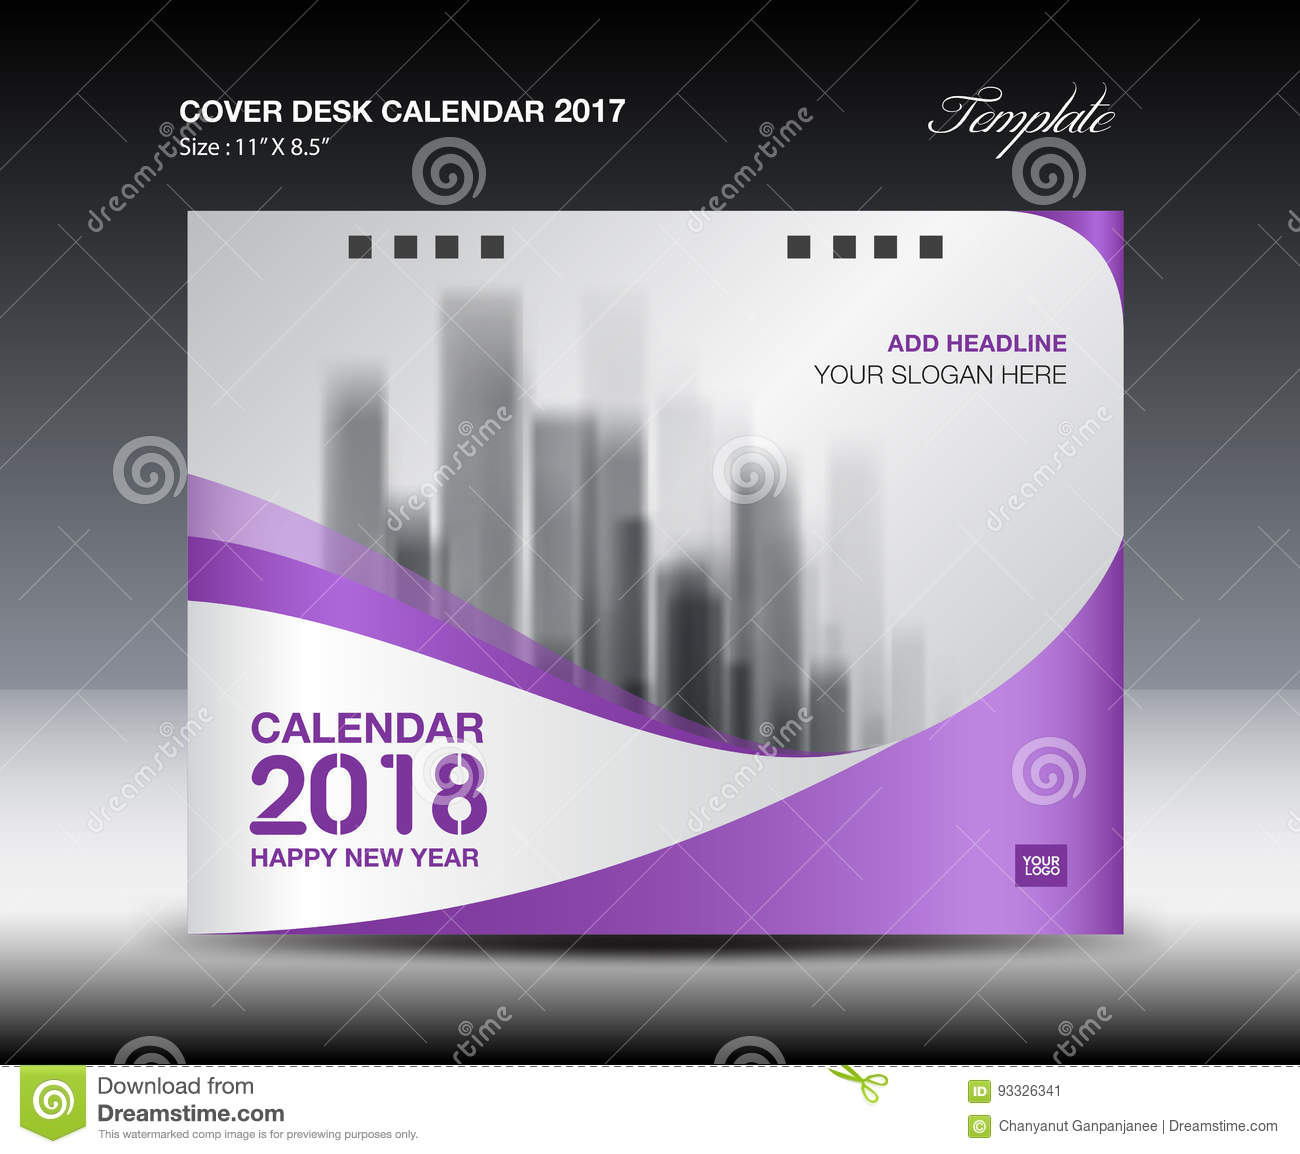 Calendar Cover : Purple cover desk calendar design flyer template